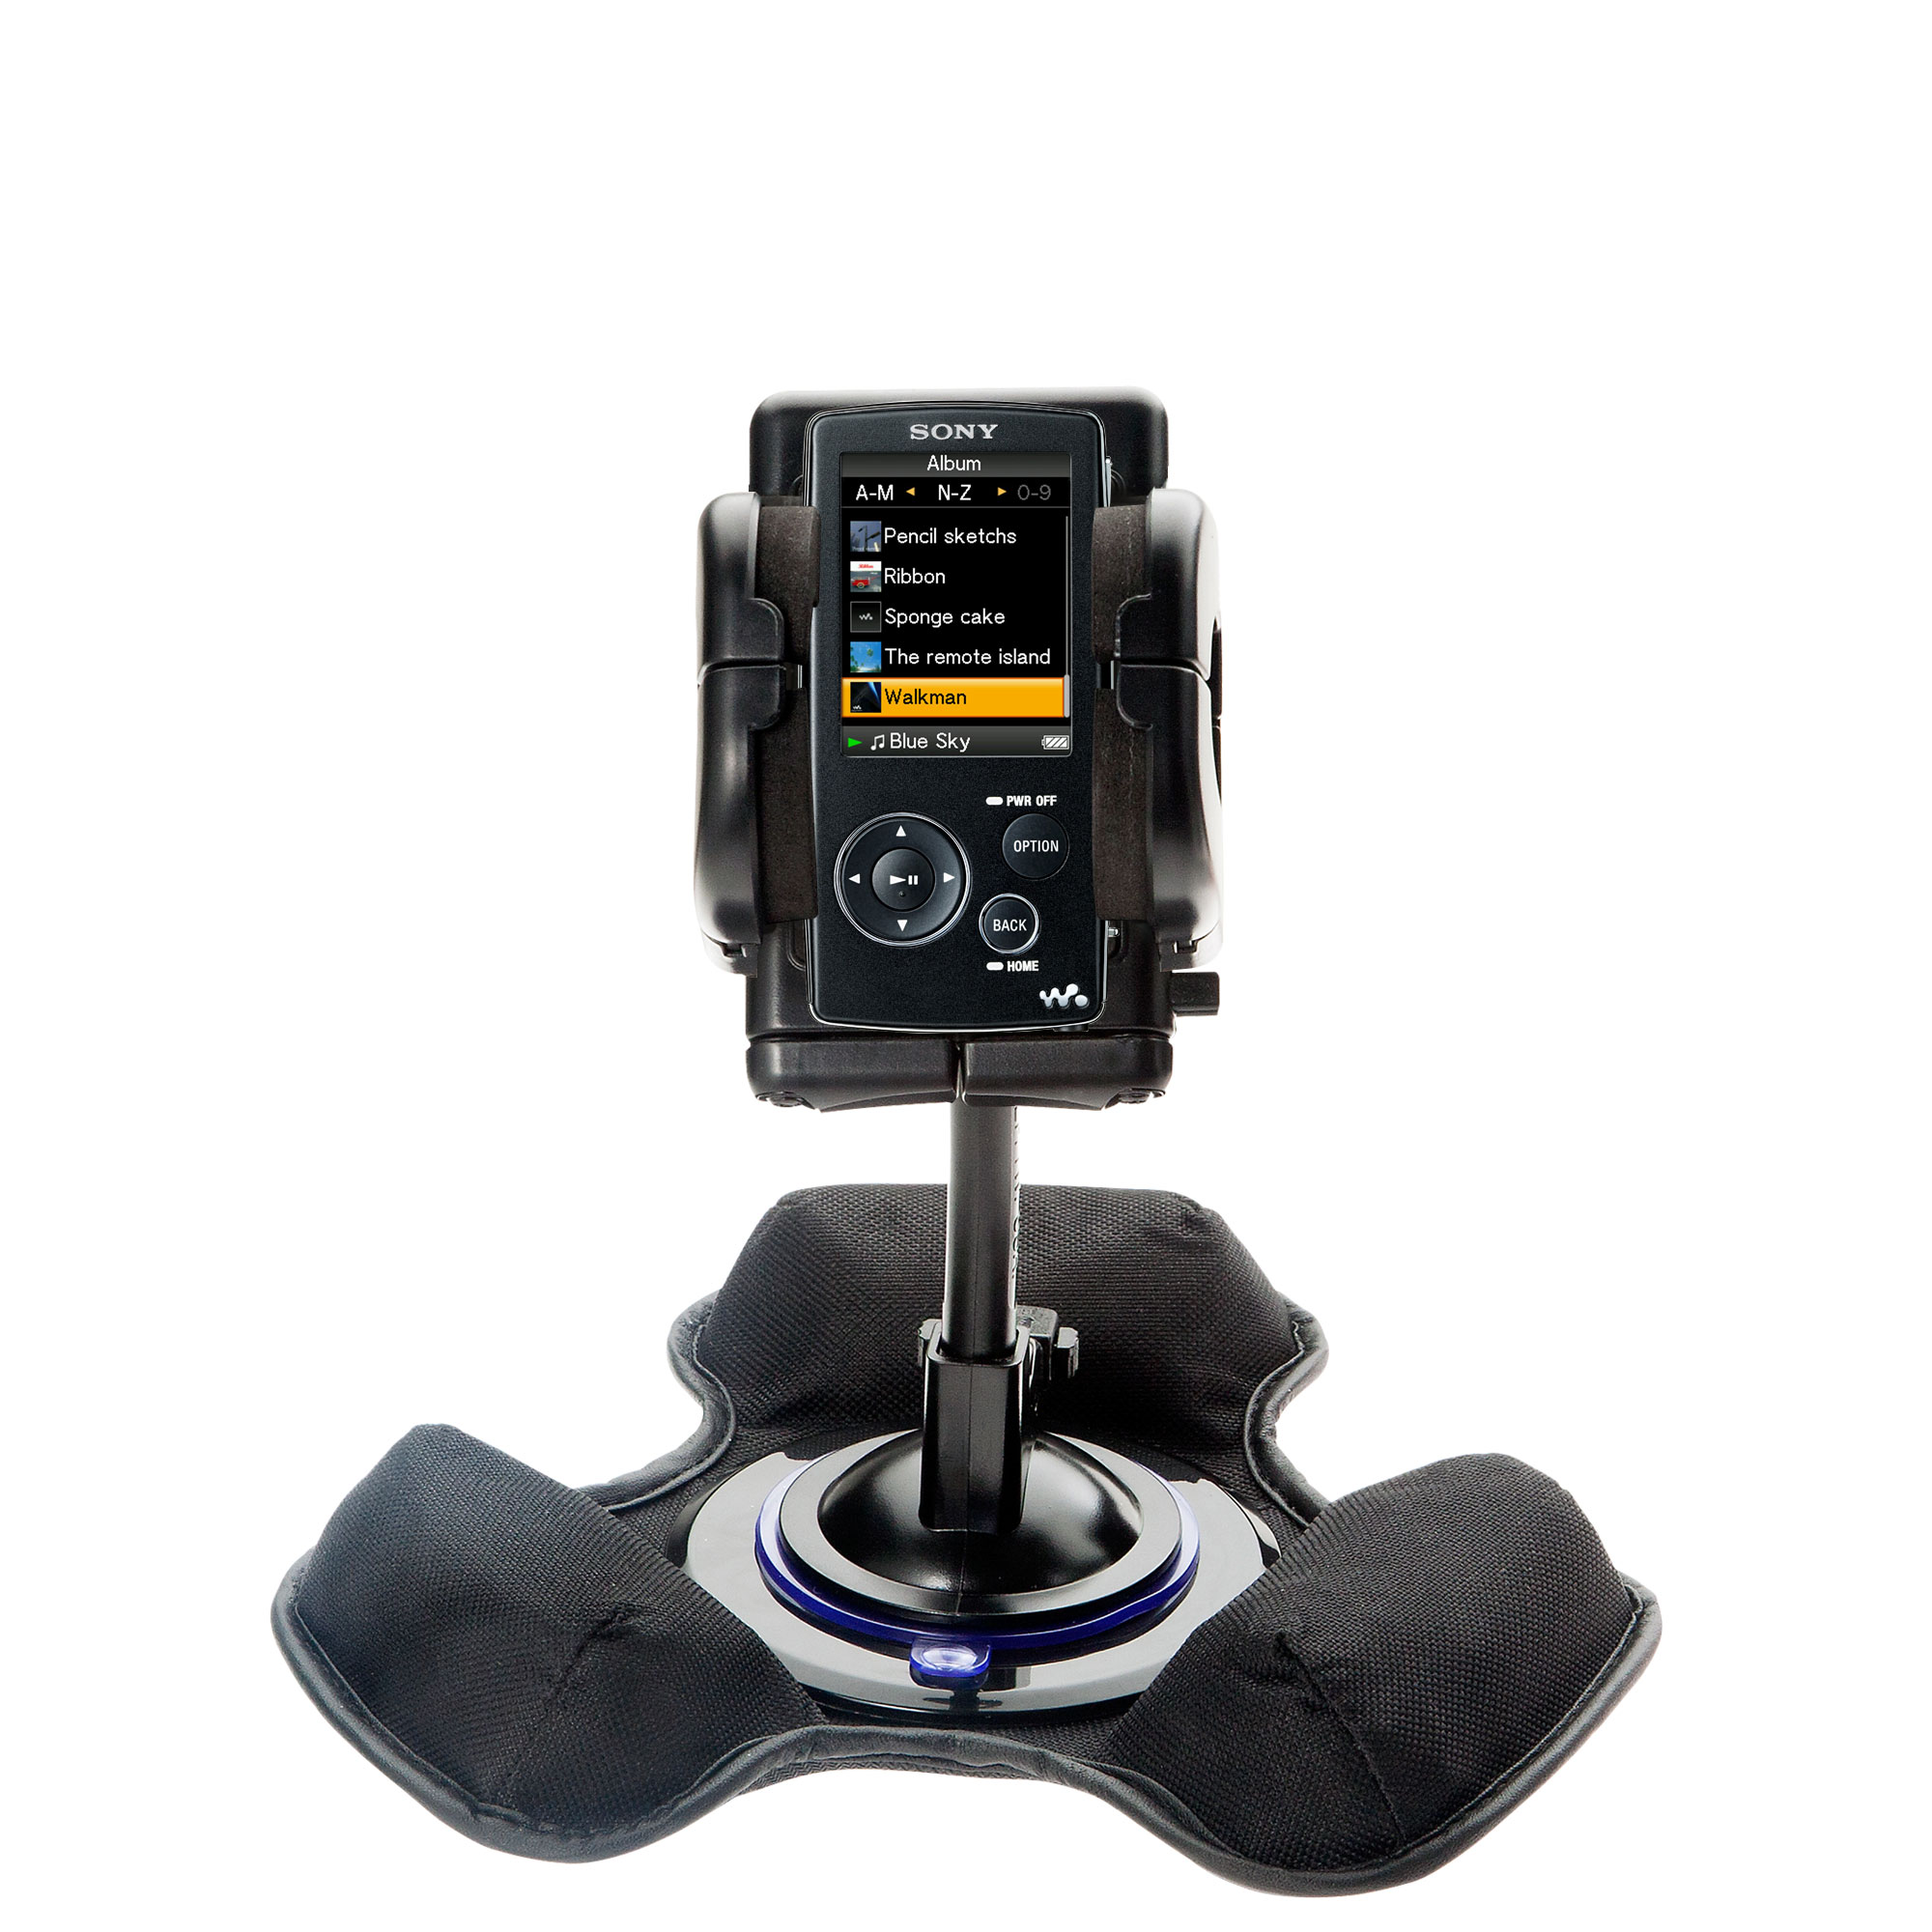 Dash and Windshield Holder compatible with the Sony Walkman NWZ-A805